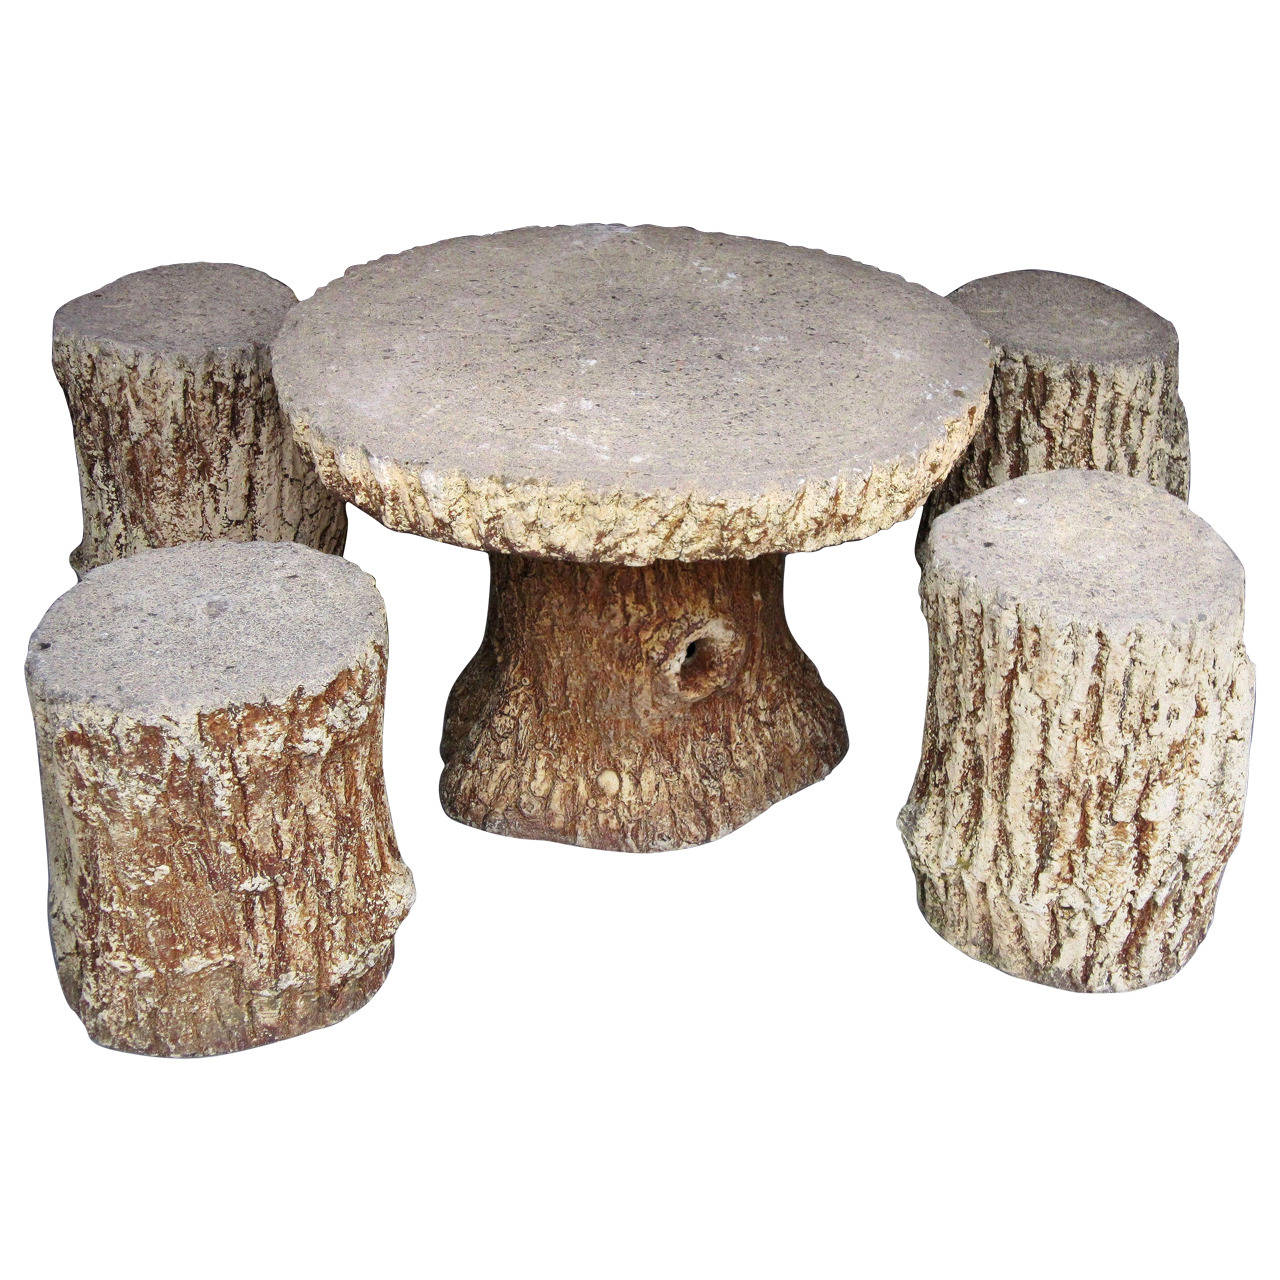 Pleasing Faux Bois Garden Stone Set Table And Four Stools The Camellatalisay Diy Chair Ideas Camellatalisaycom